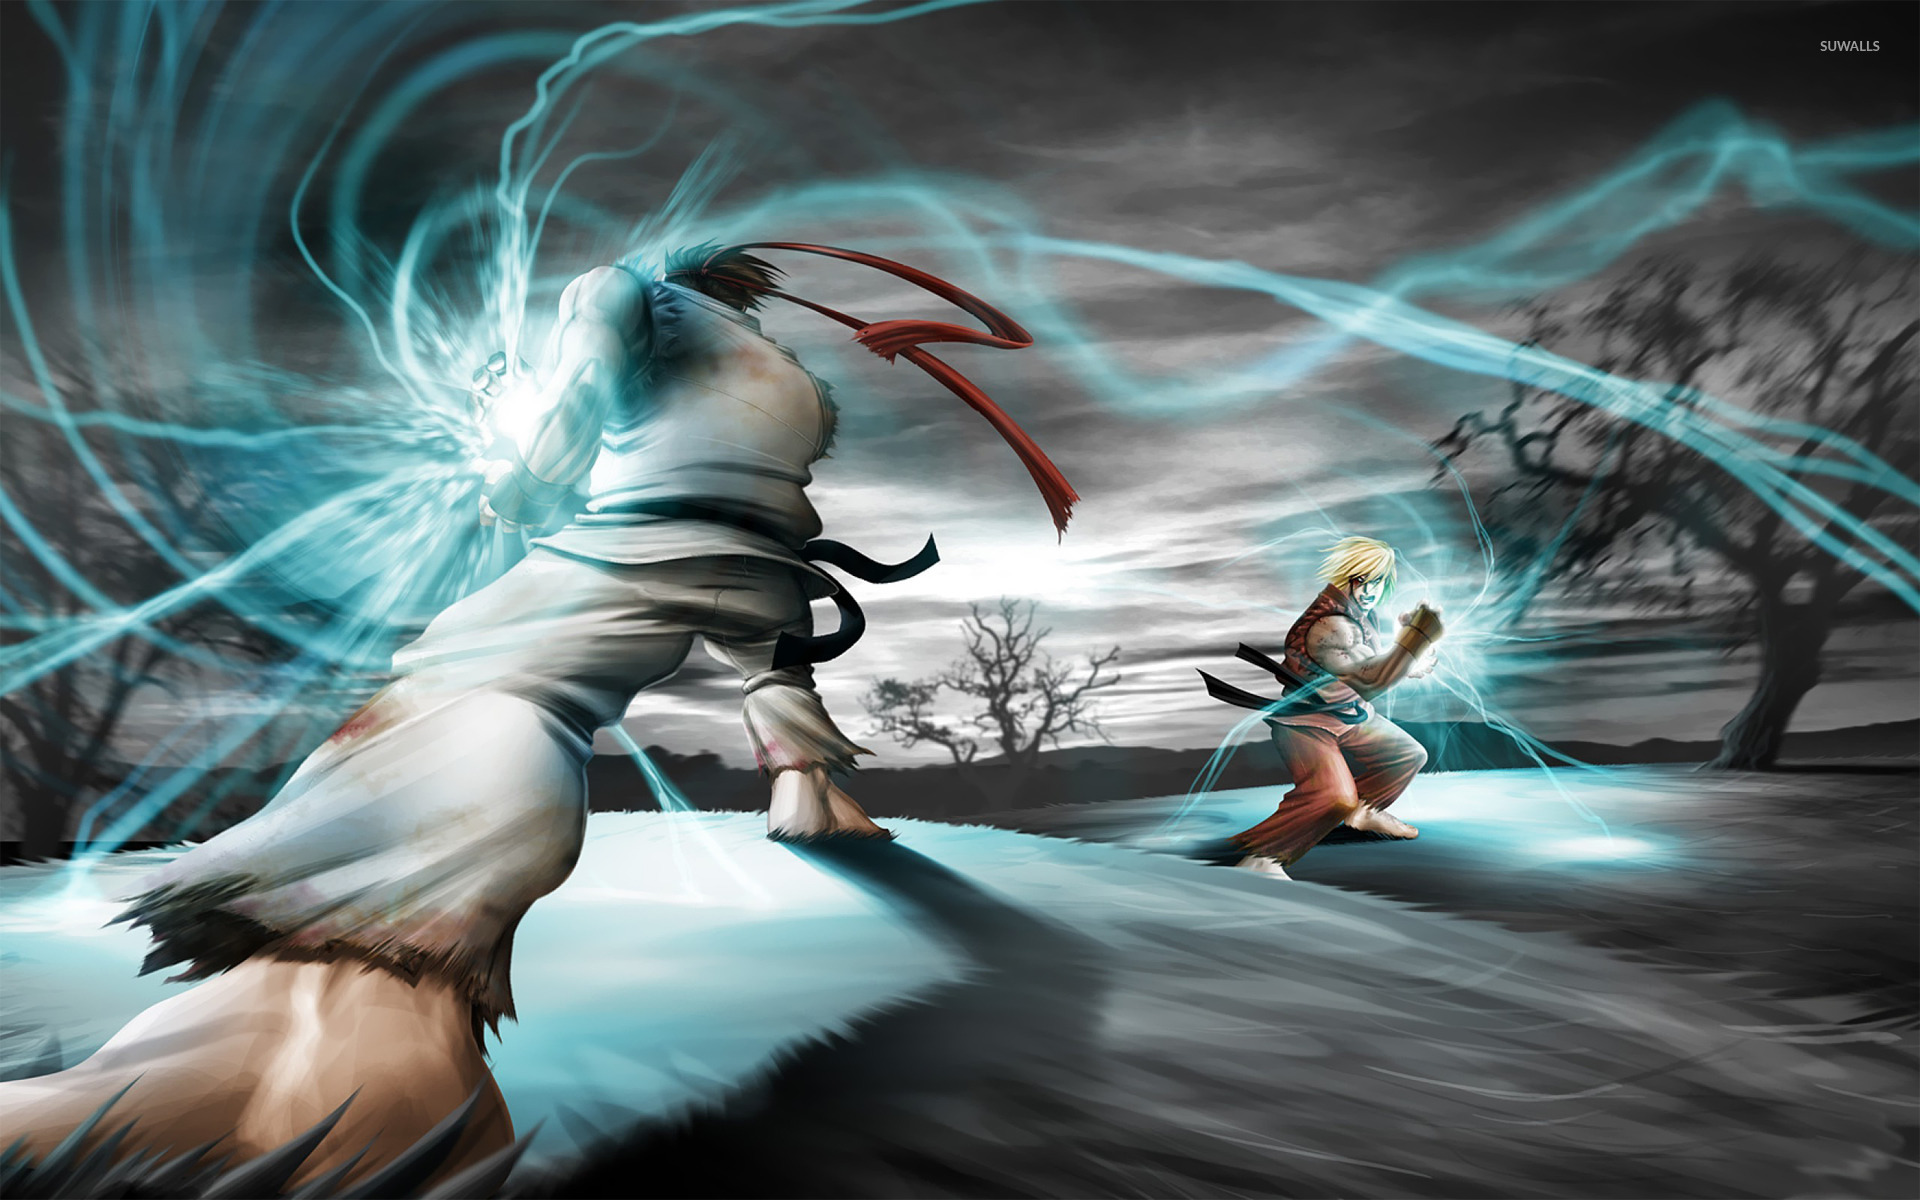 ryu and ken - street fighter wallpaper - game wallpapers - #17748